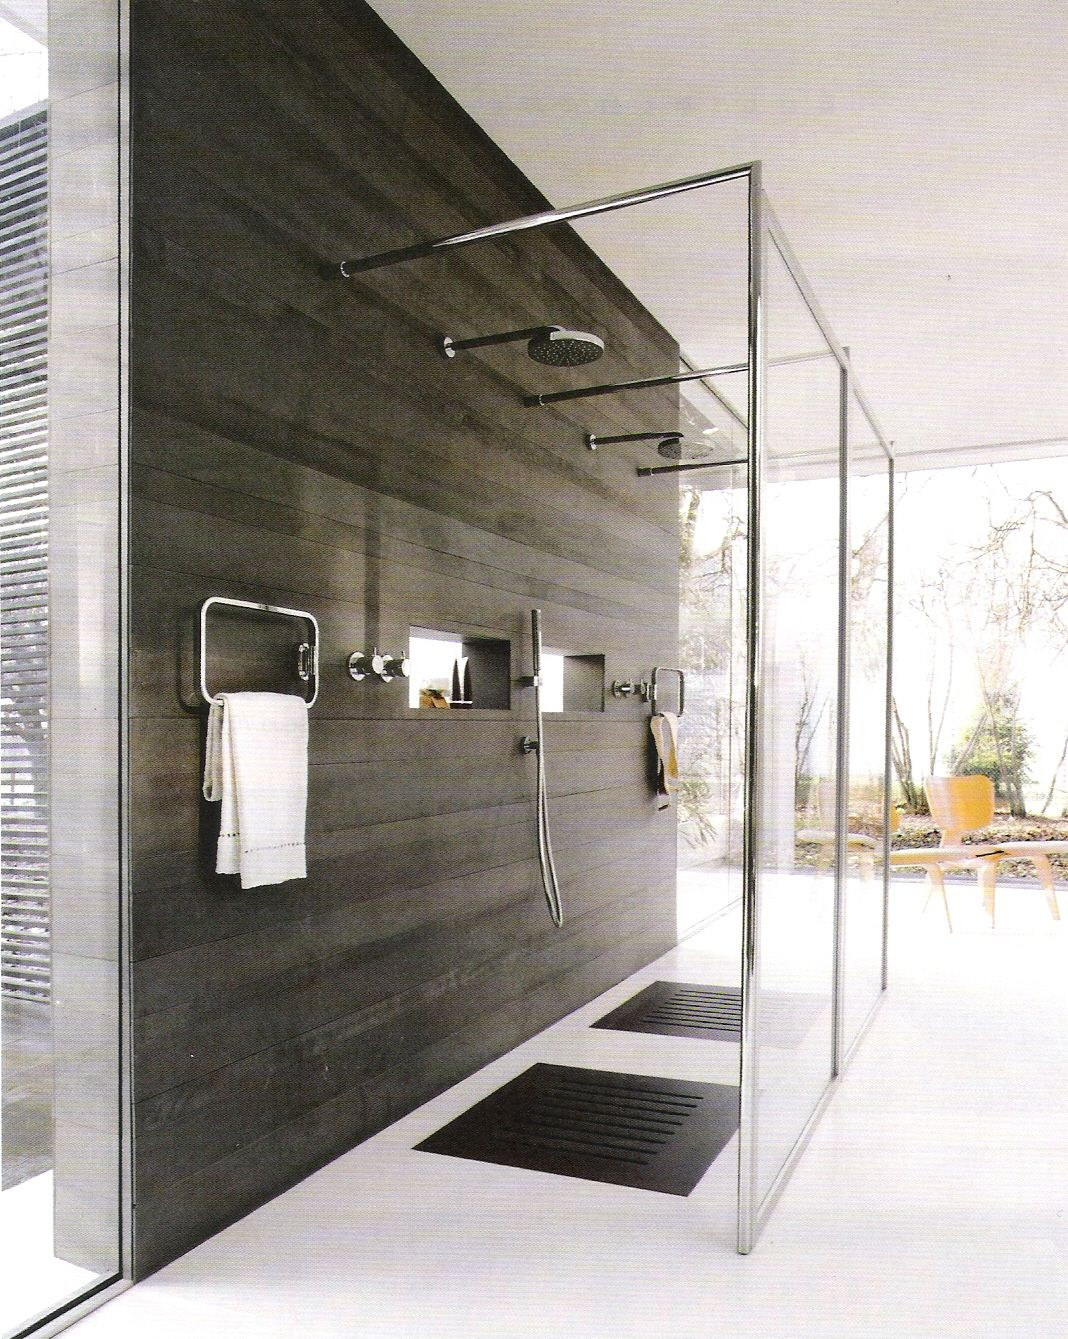 25 Incredible Open Shower Ideas | Bath design, Open ...